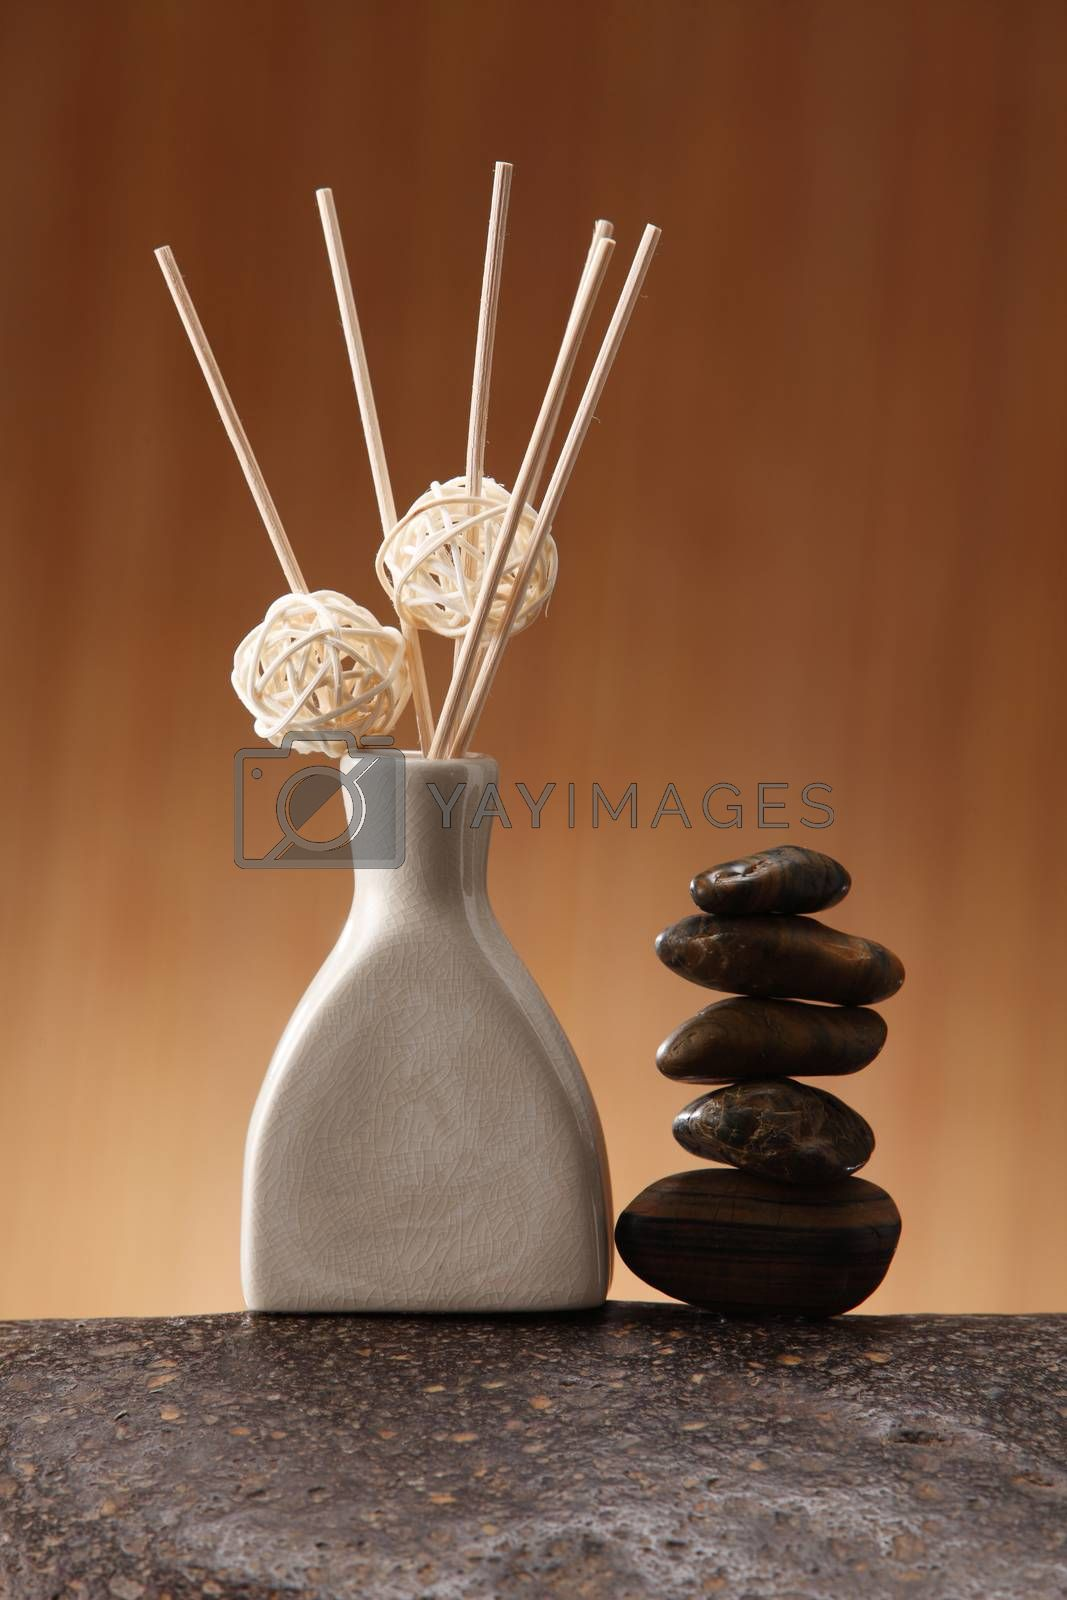 Sticks of incense in ceramic jar